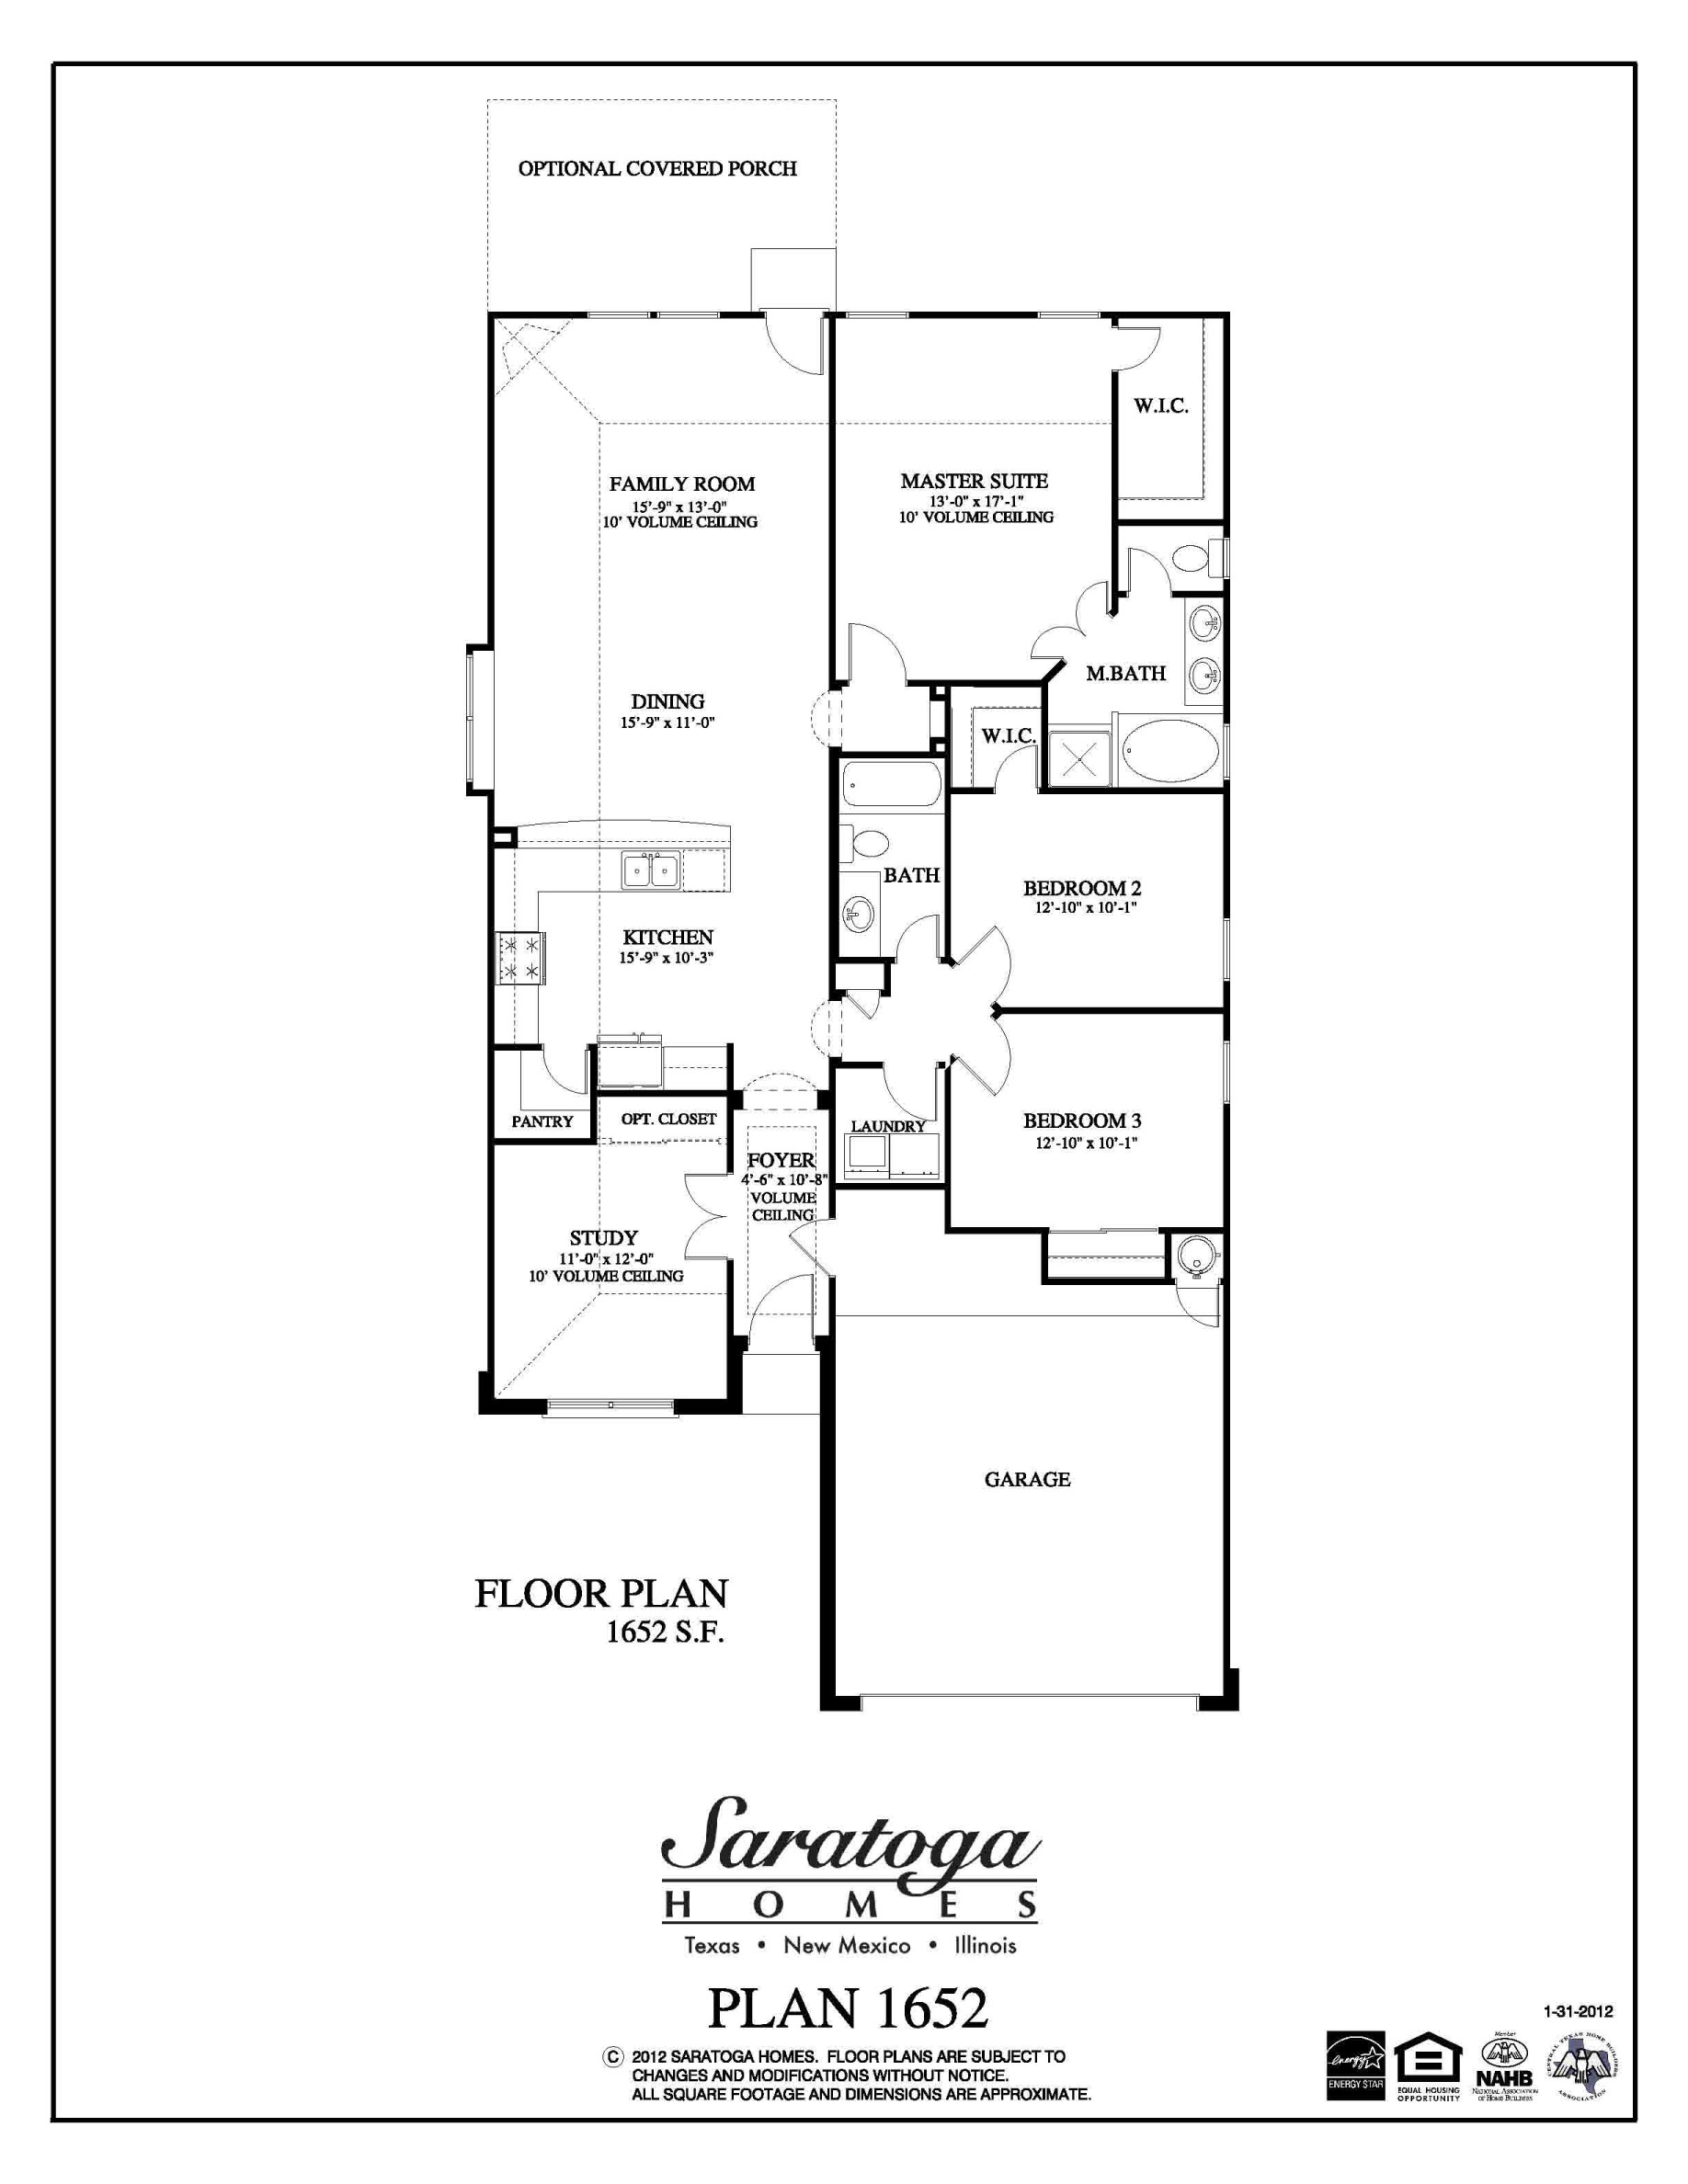 Housing Floor Plans Layout Plan 1652 Saratoga Homes Houston